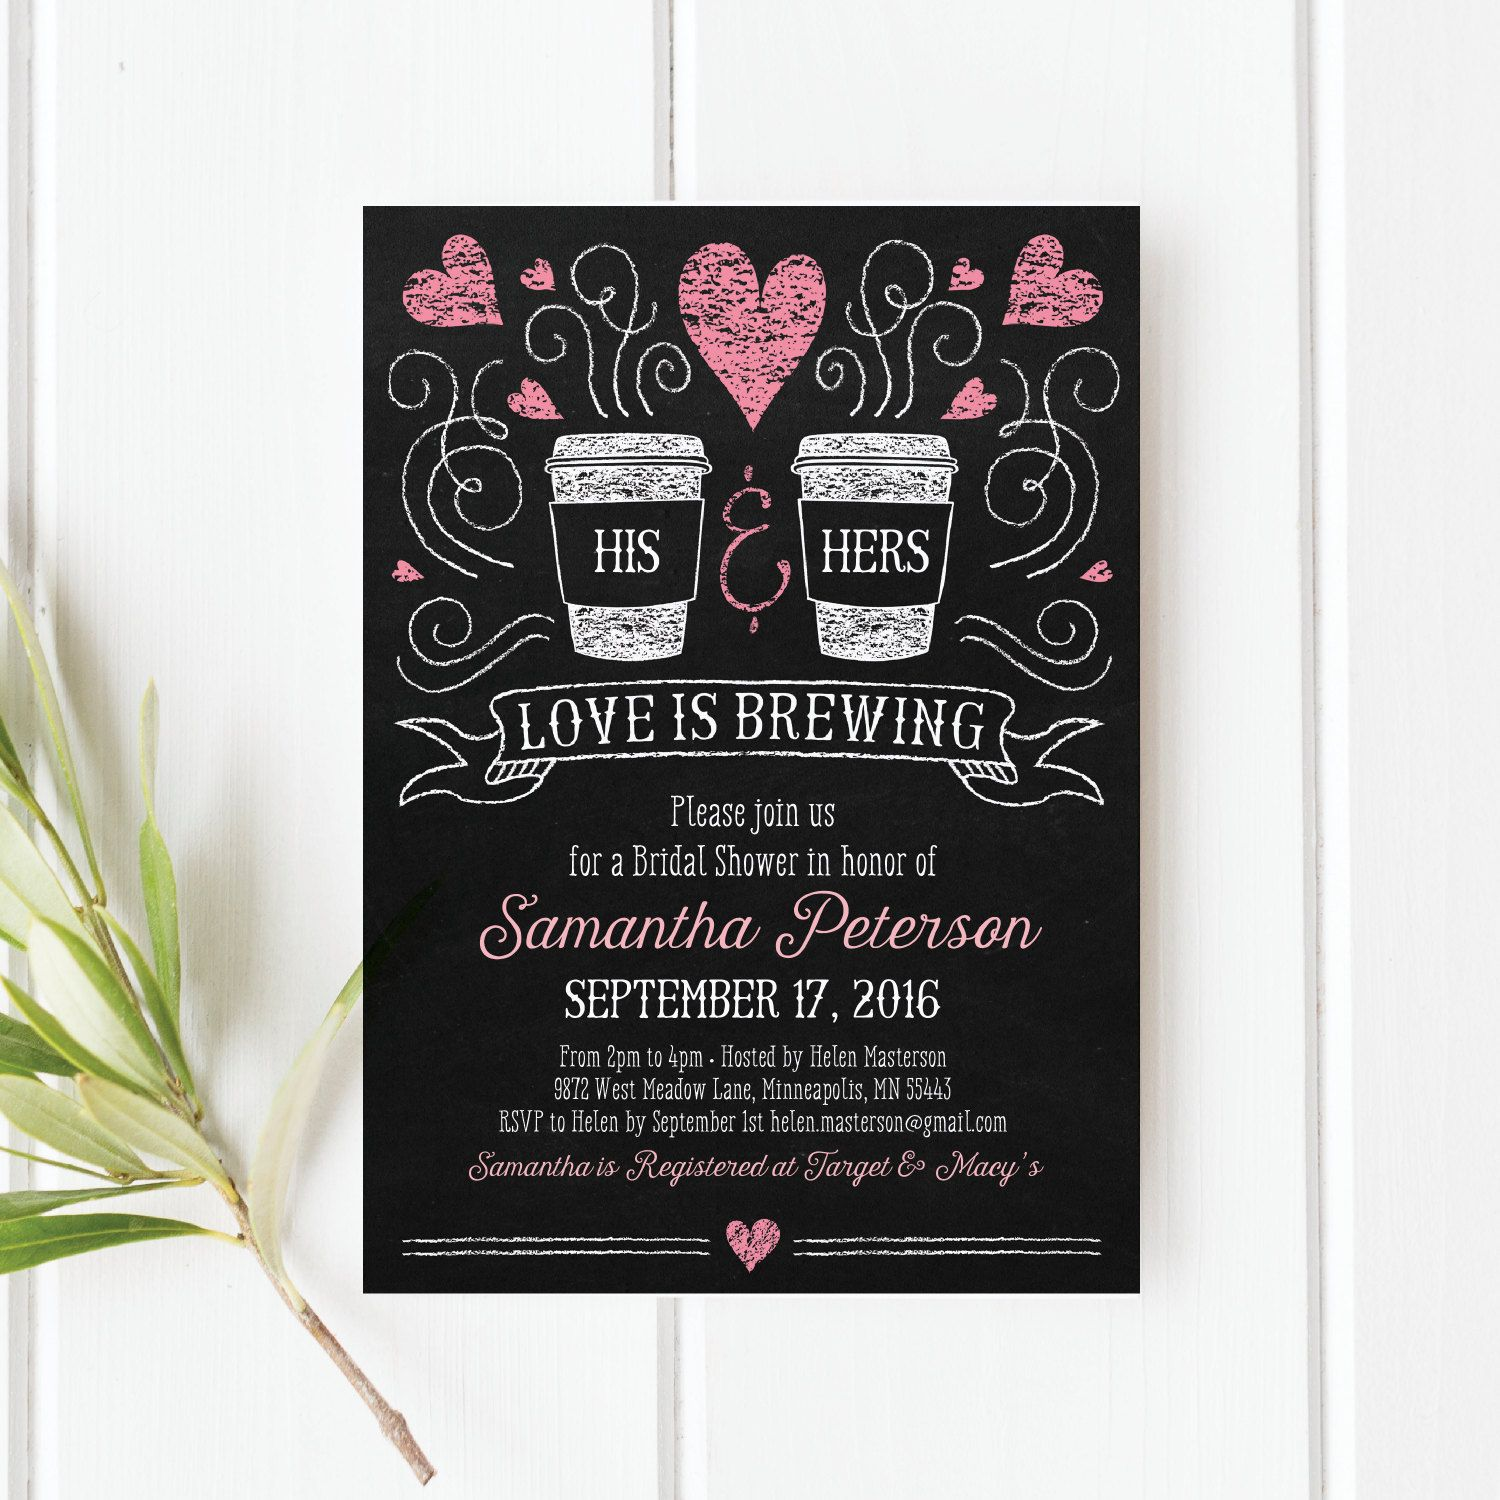 Love is Brewing Bridal Shower Invitation, Printable PDF Template ...